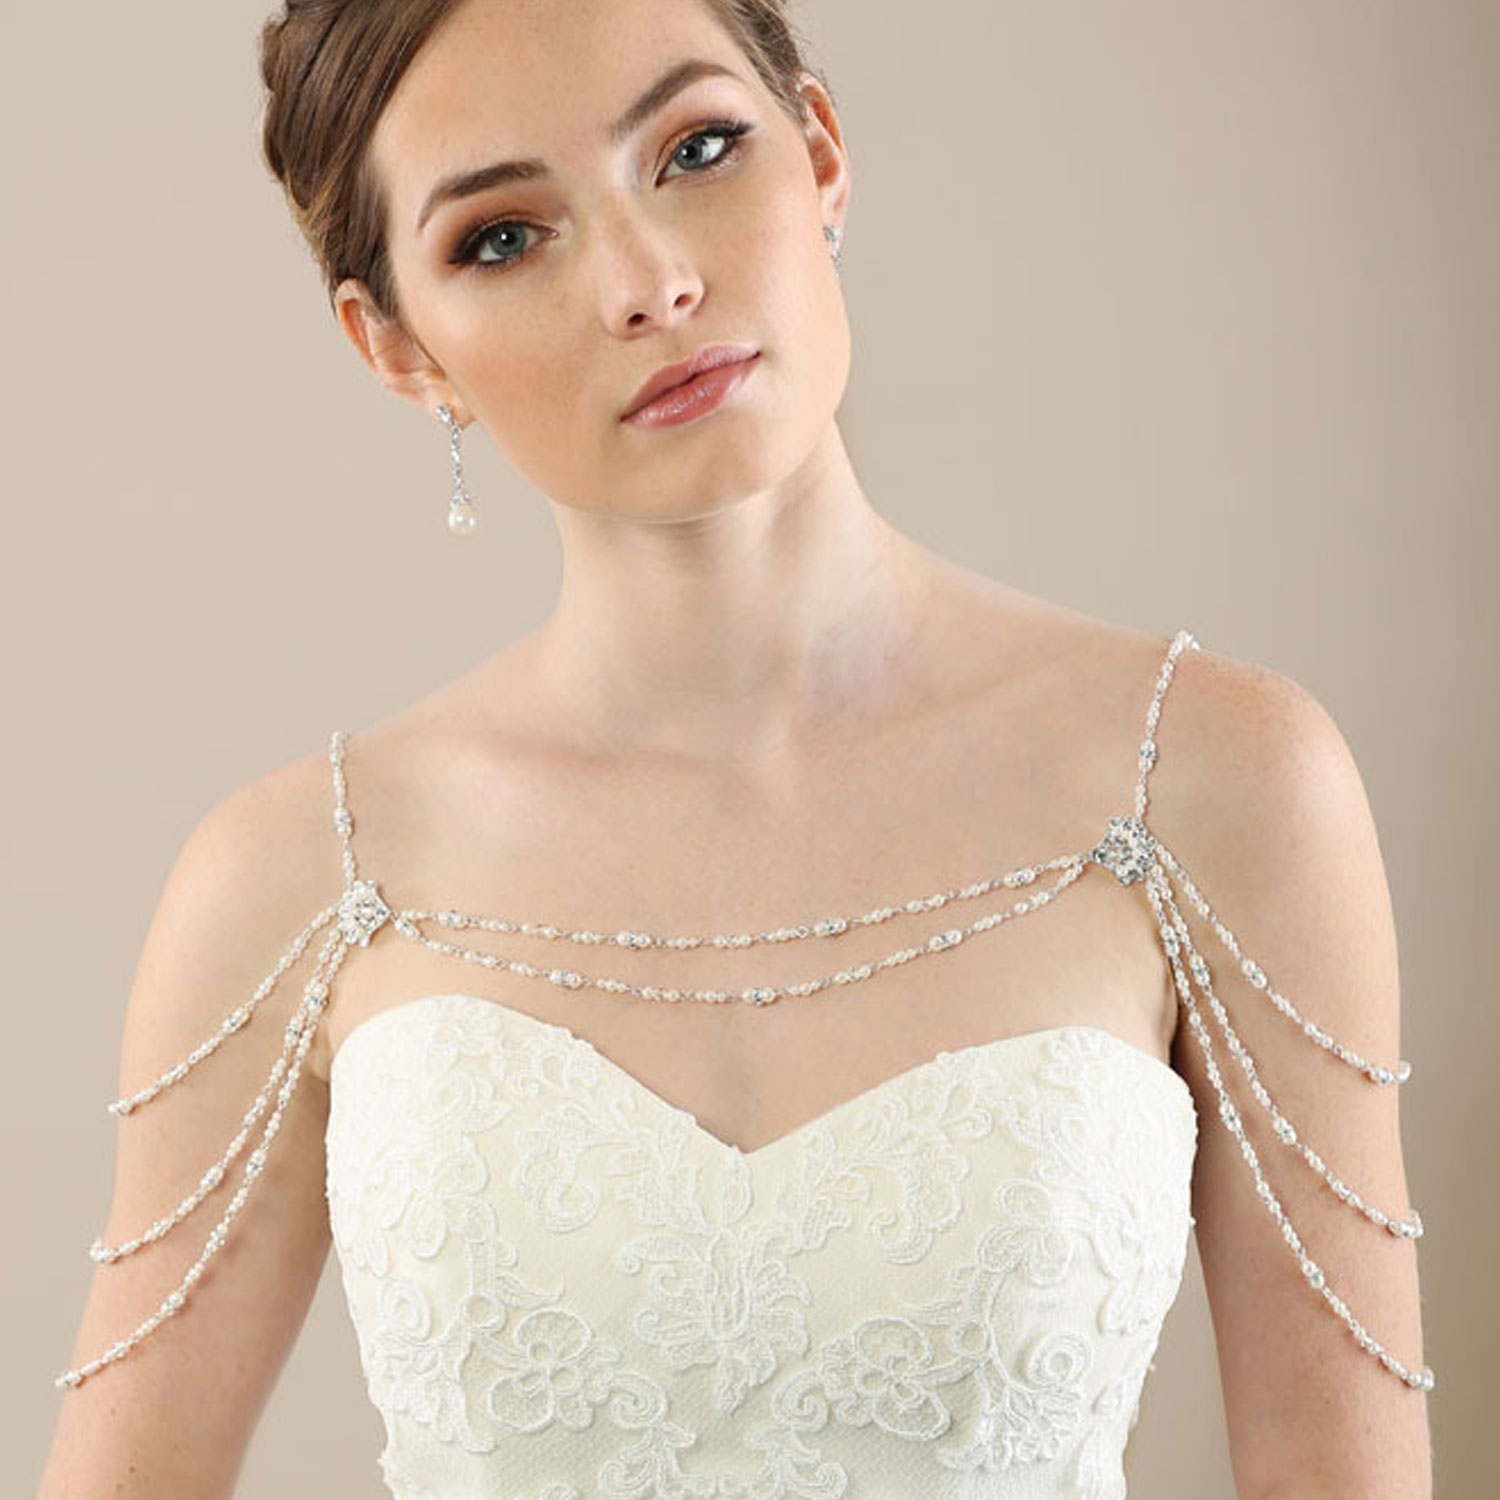 Jewelry for Bel aire bridal jewelry